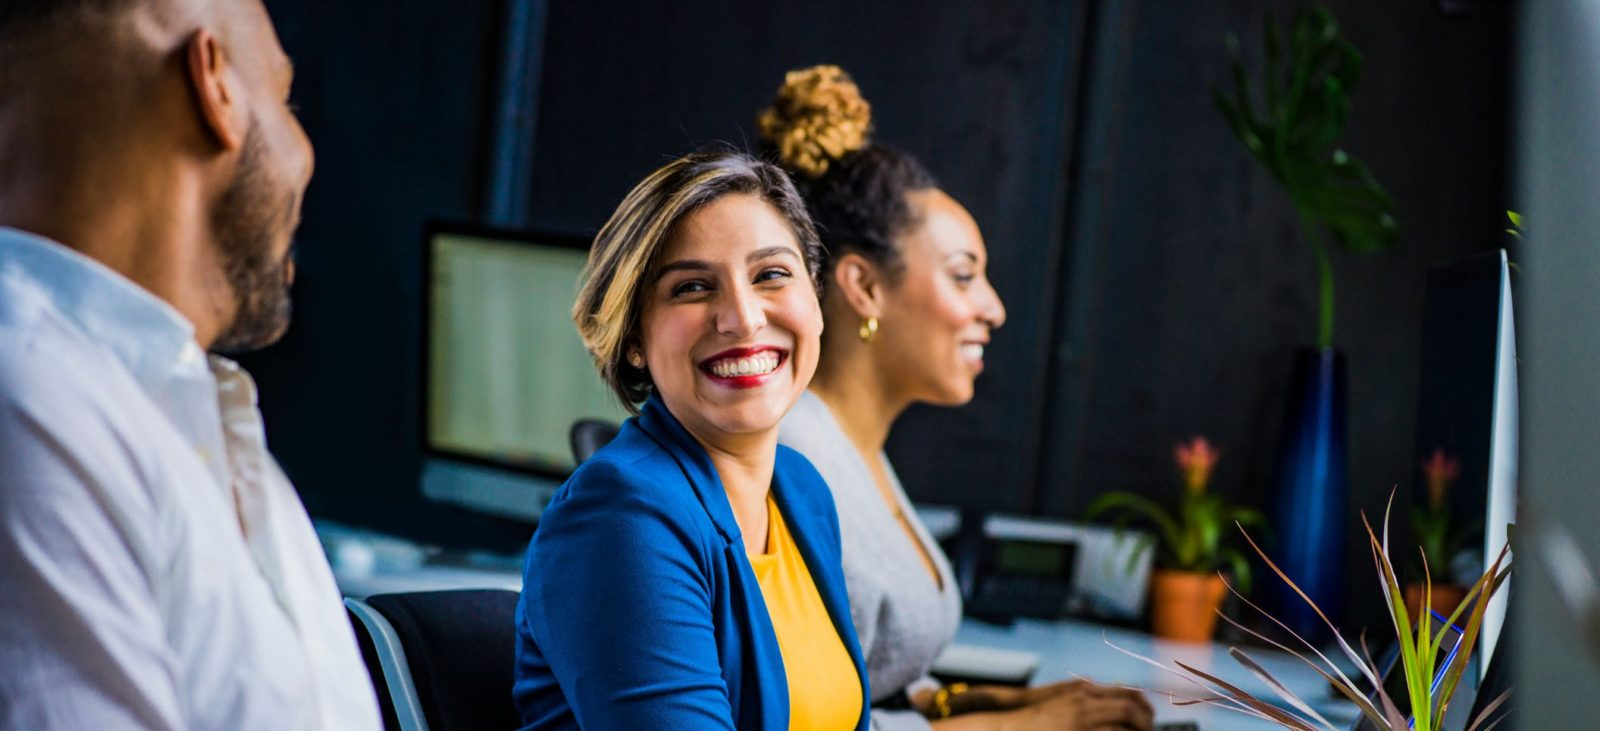 Smiling employee looking at colleague